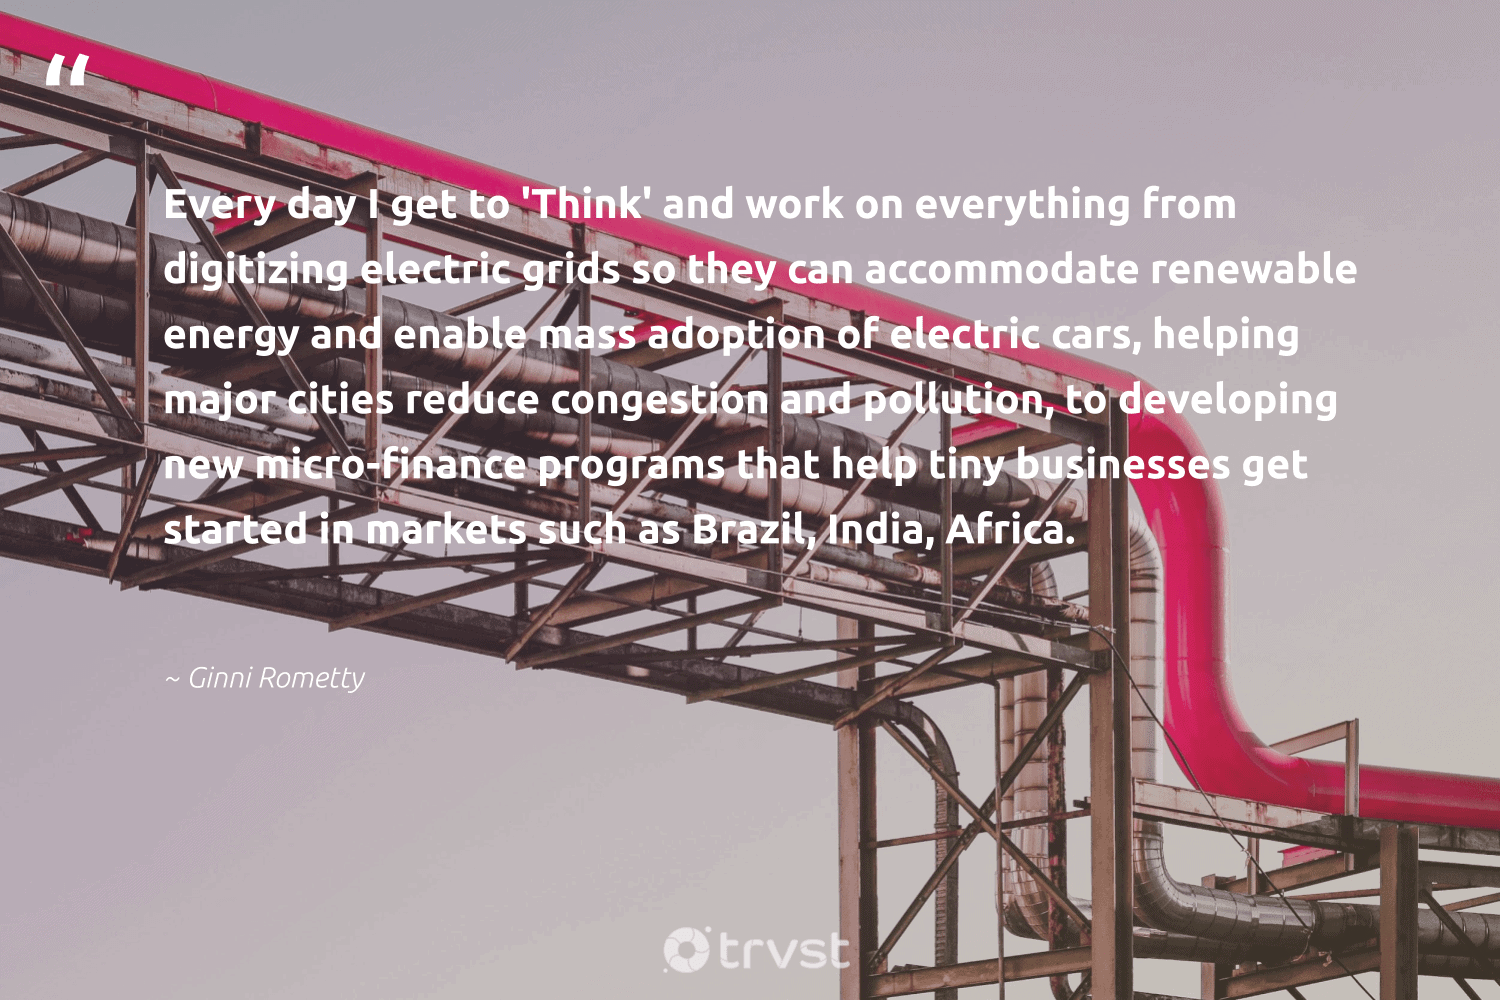 """""""Every day I get to 'Think' and work on everything from digitizing electric grids so they can accommodate renewable energy and enable mass adoption of electric cars, helping major cities reduce congestion and pollution, to developing new micro-finance programs that help tiny businesses get started in markets such as Brazil, India, Africa.""""  - Ginni Rometty #trvst #quotes #renewableenergy #india #africa #reduce #energy #renewable #pollution #cleanenergy #refurbished #sustainableliving"""